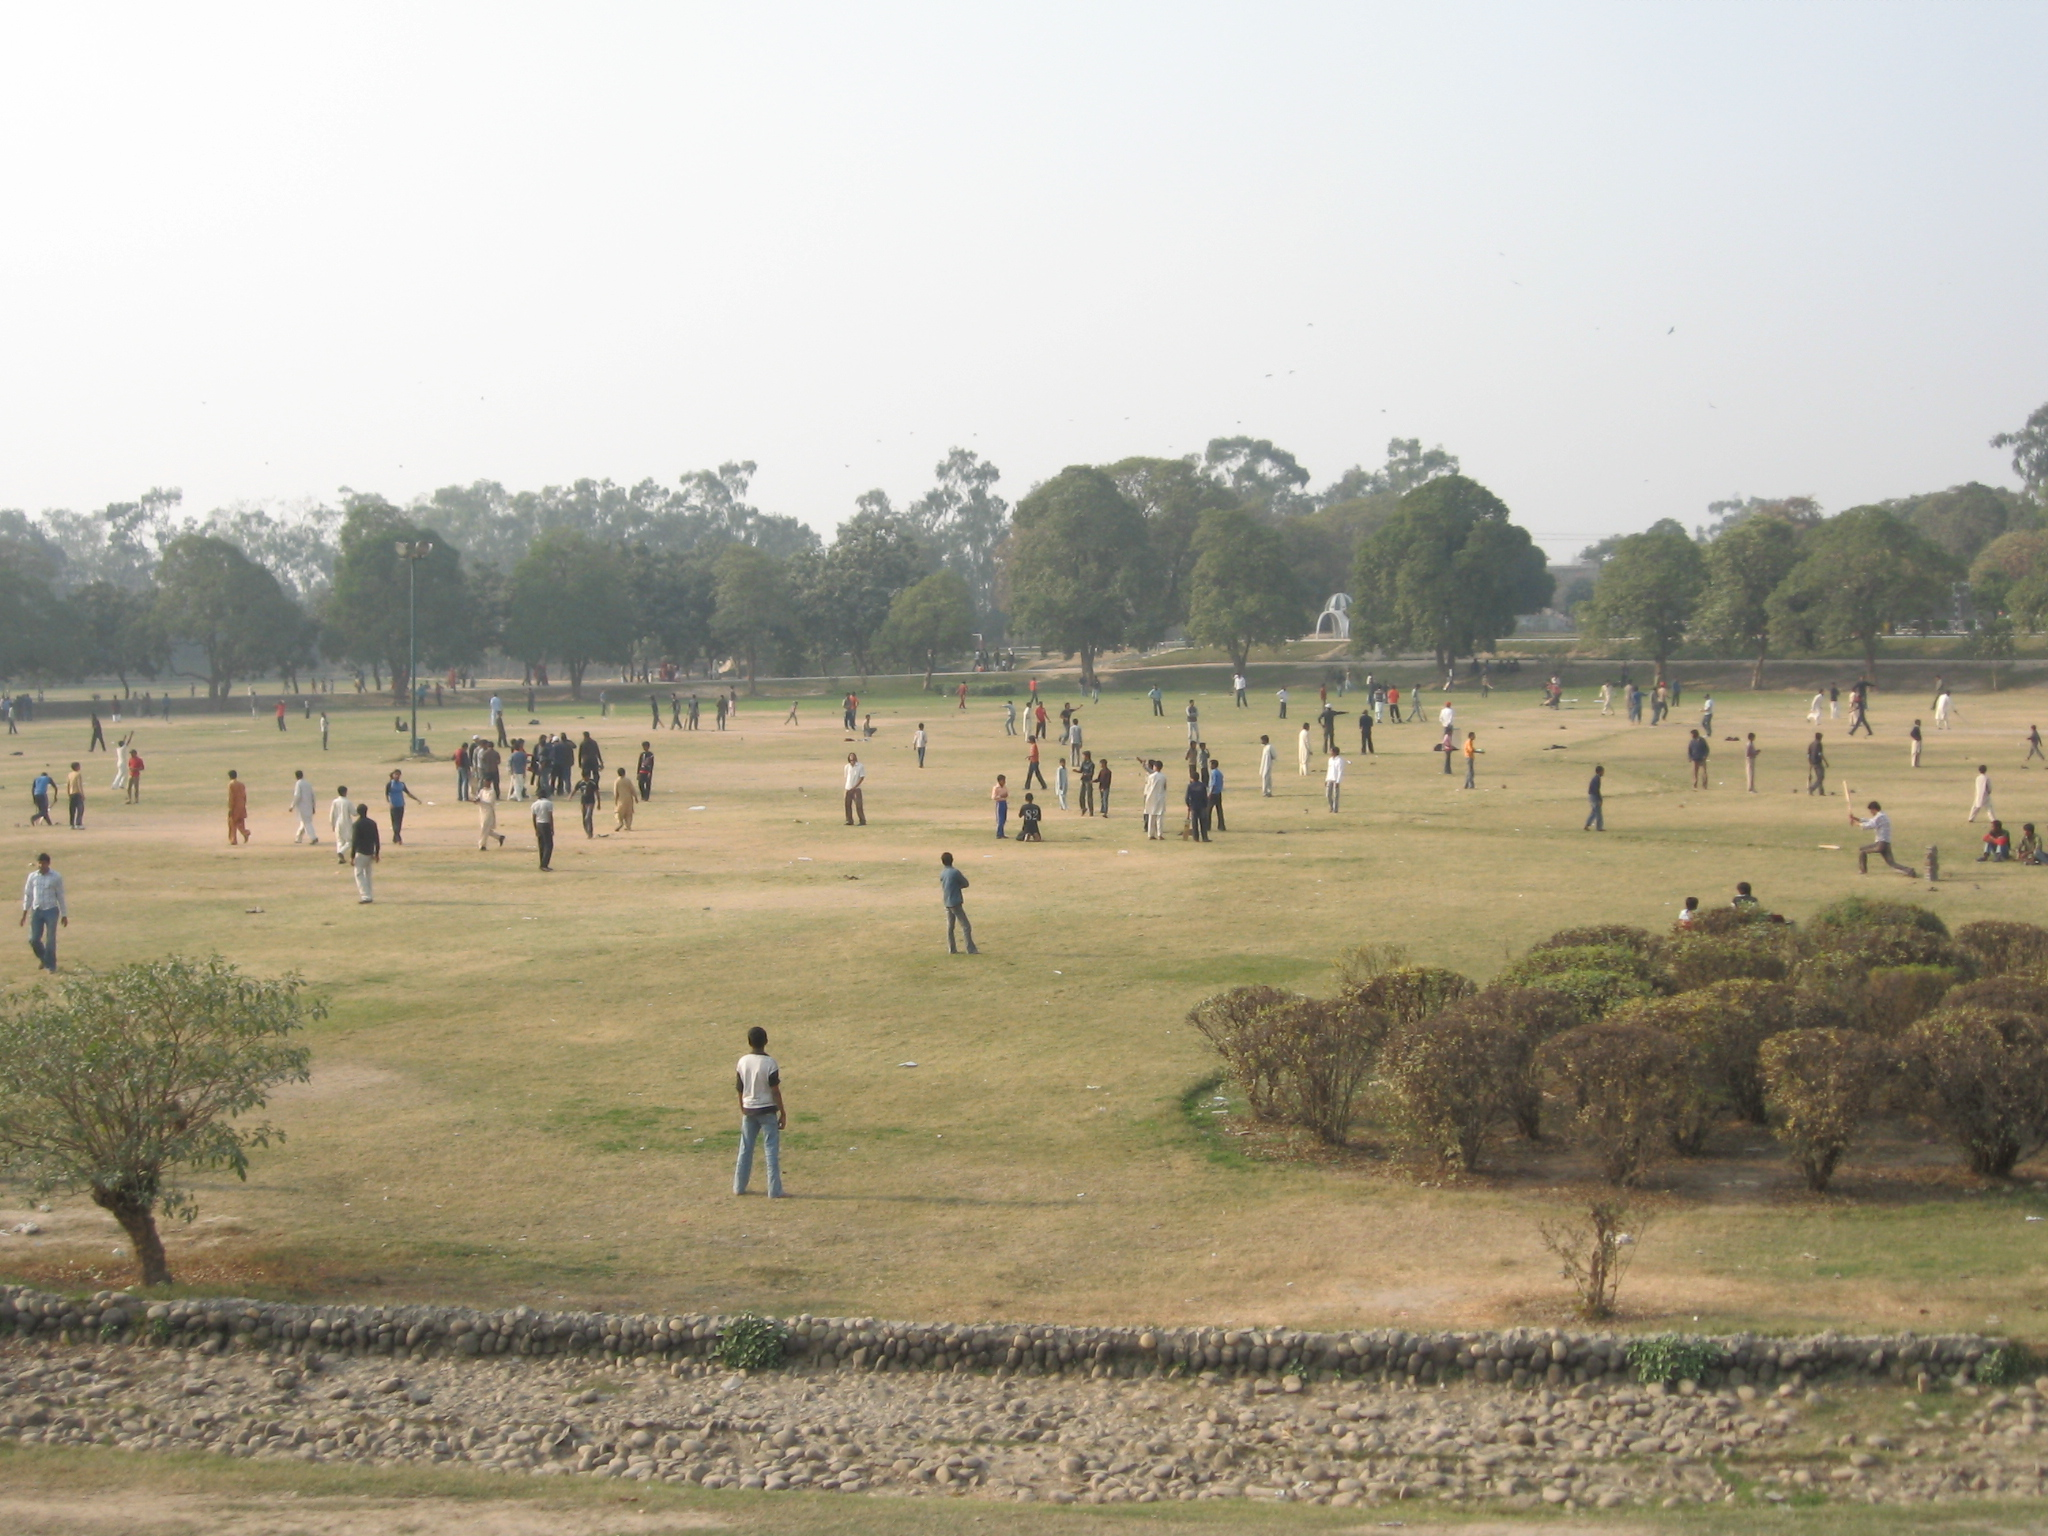 Gulshan-e-Iqbal park (Photo from Wikipedia)